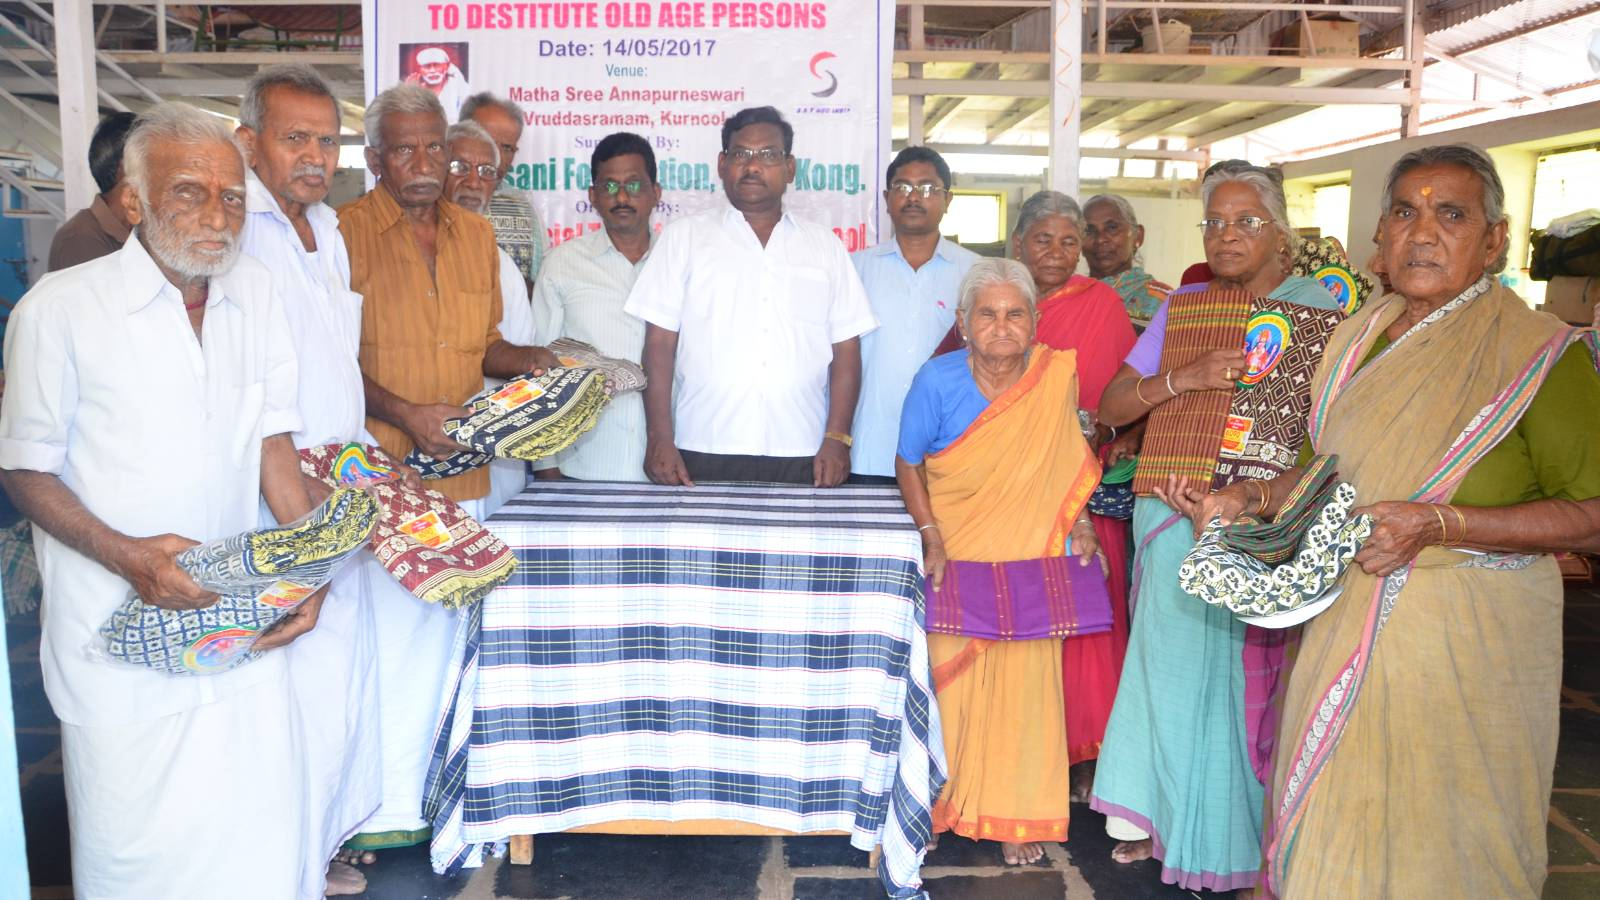 Distribution of Clothing & Bedding to Old Age Persons